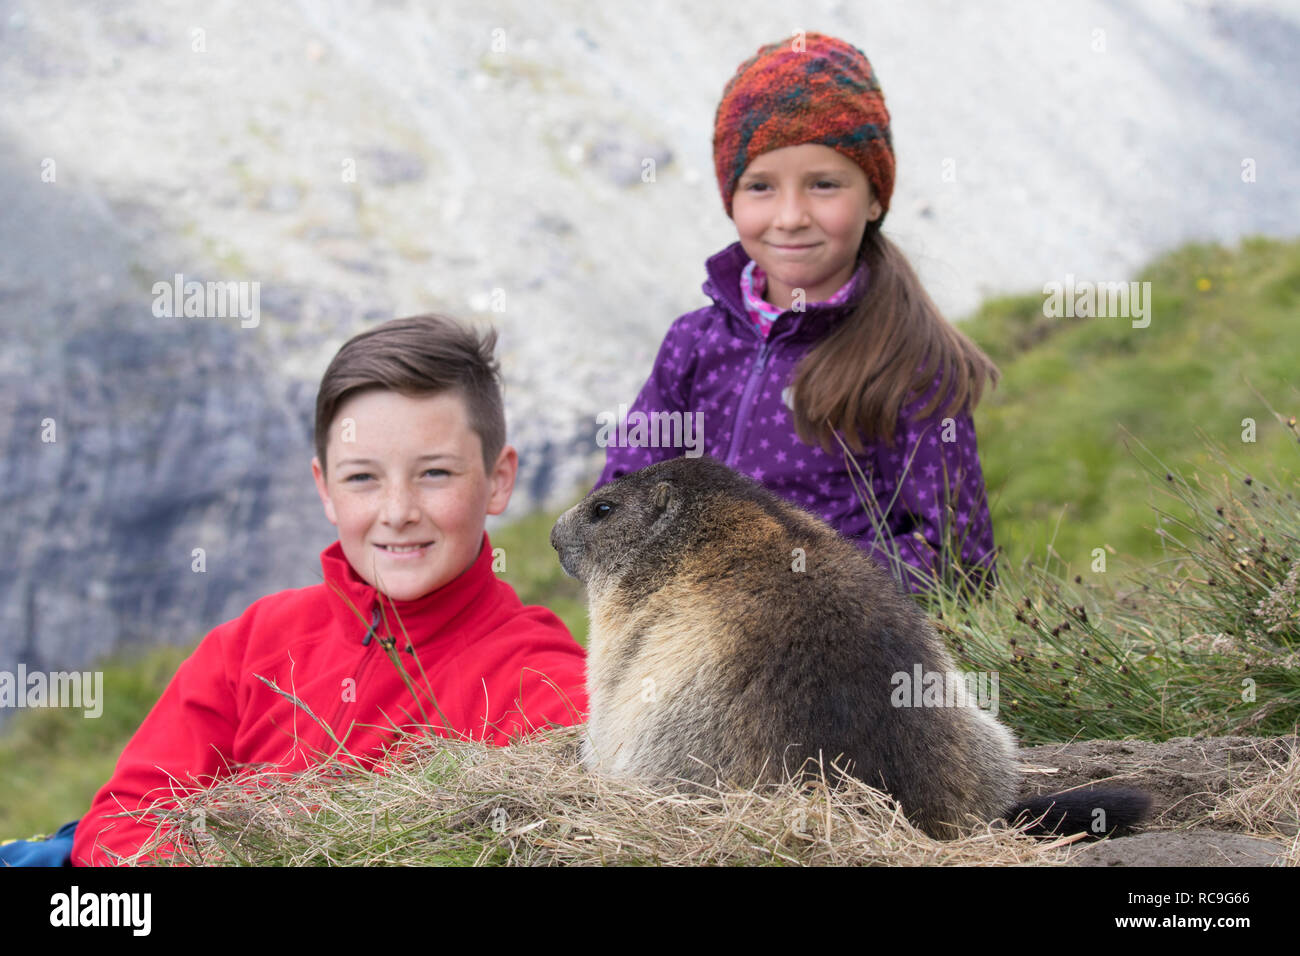 Two children looking at emerging Alpine marmot (Marmota marmota) in summer in the Alps - Stock Image